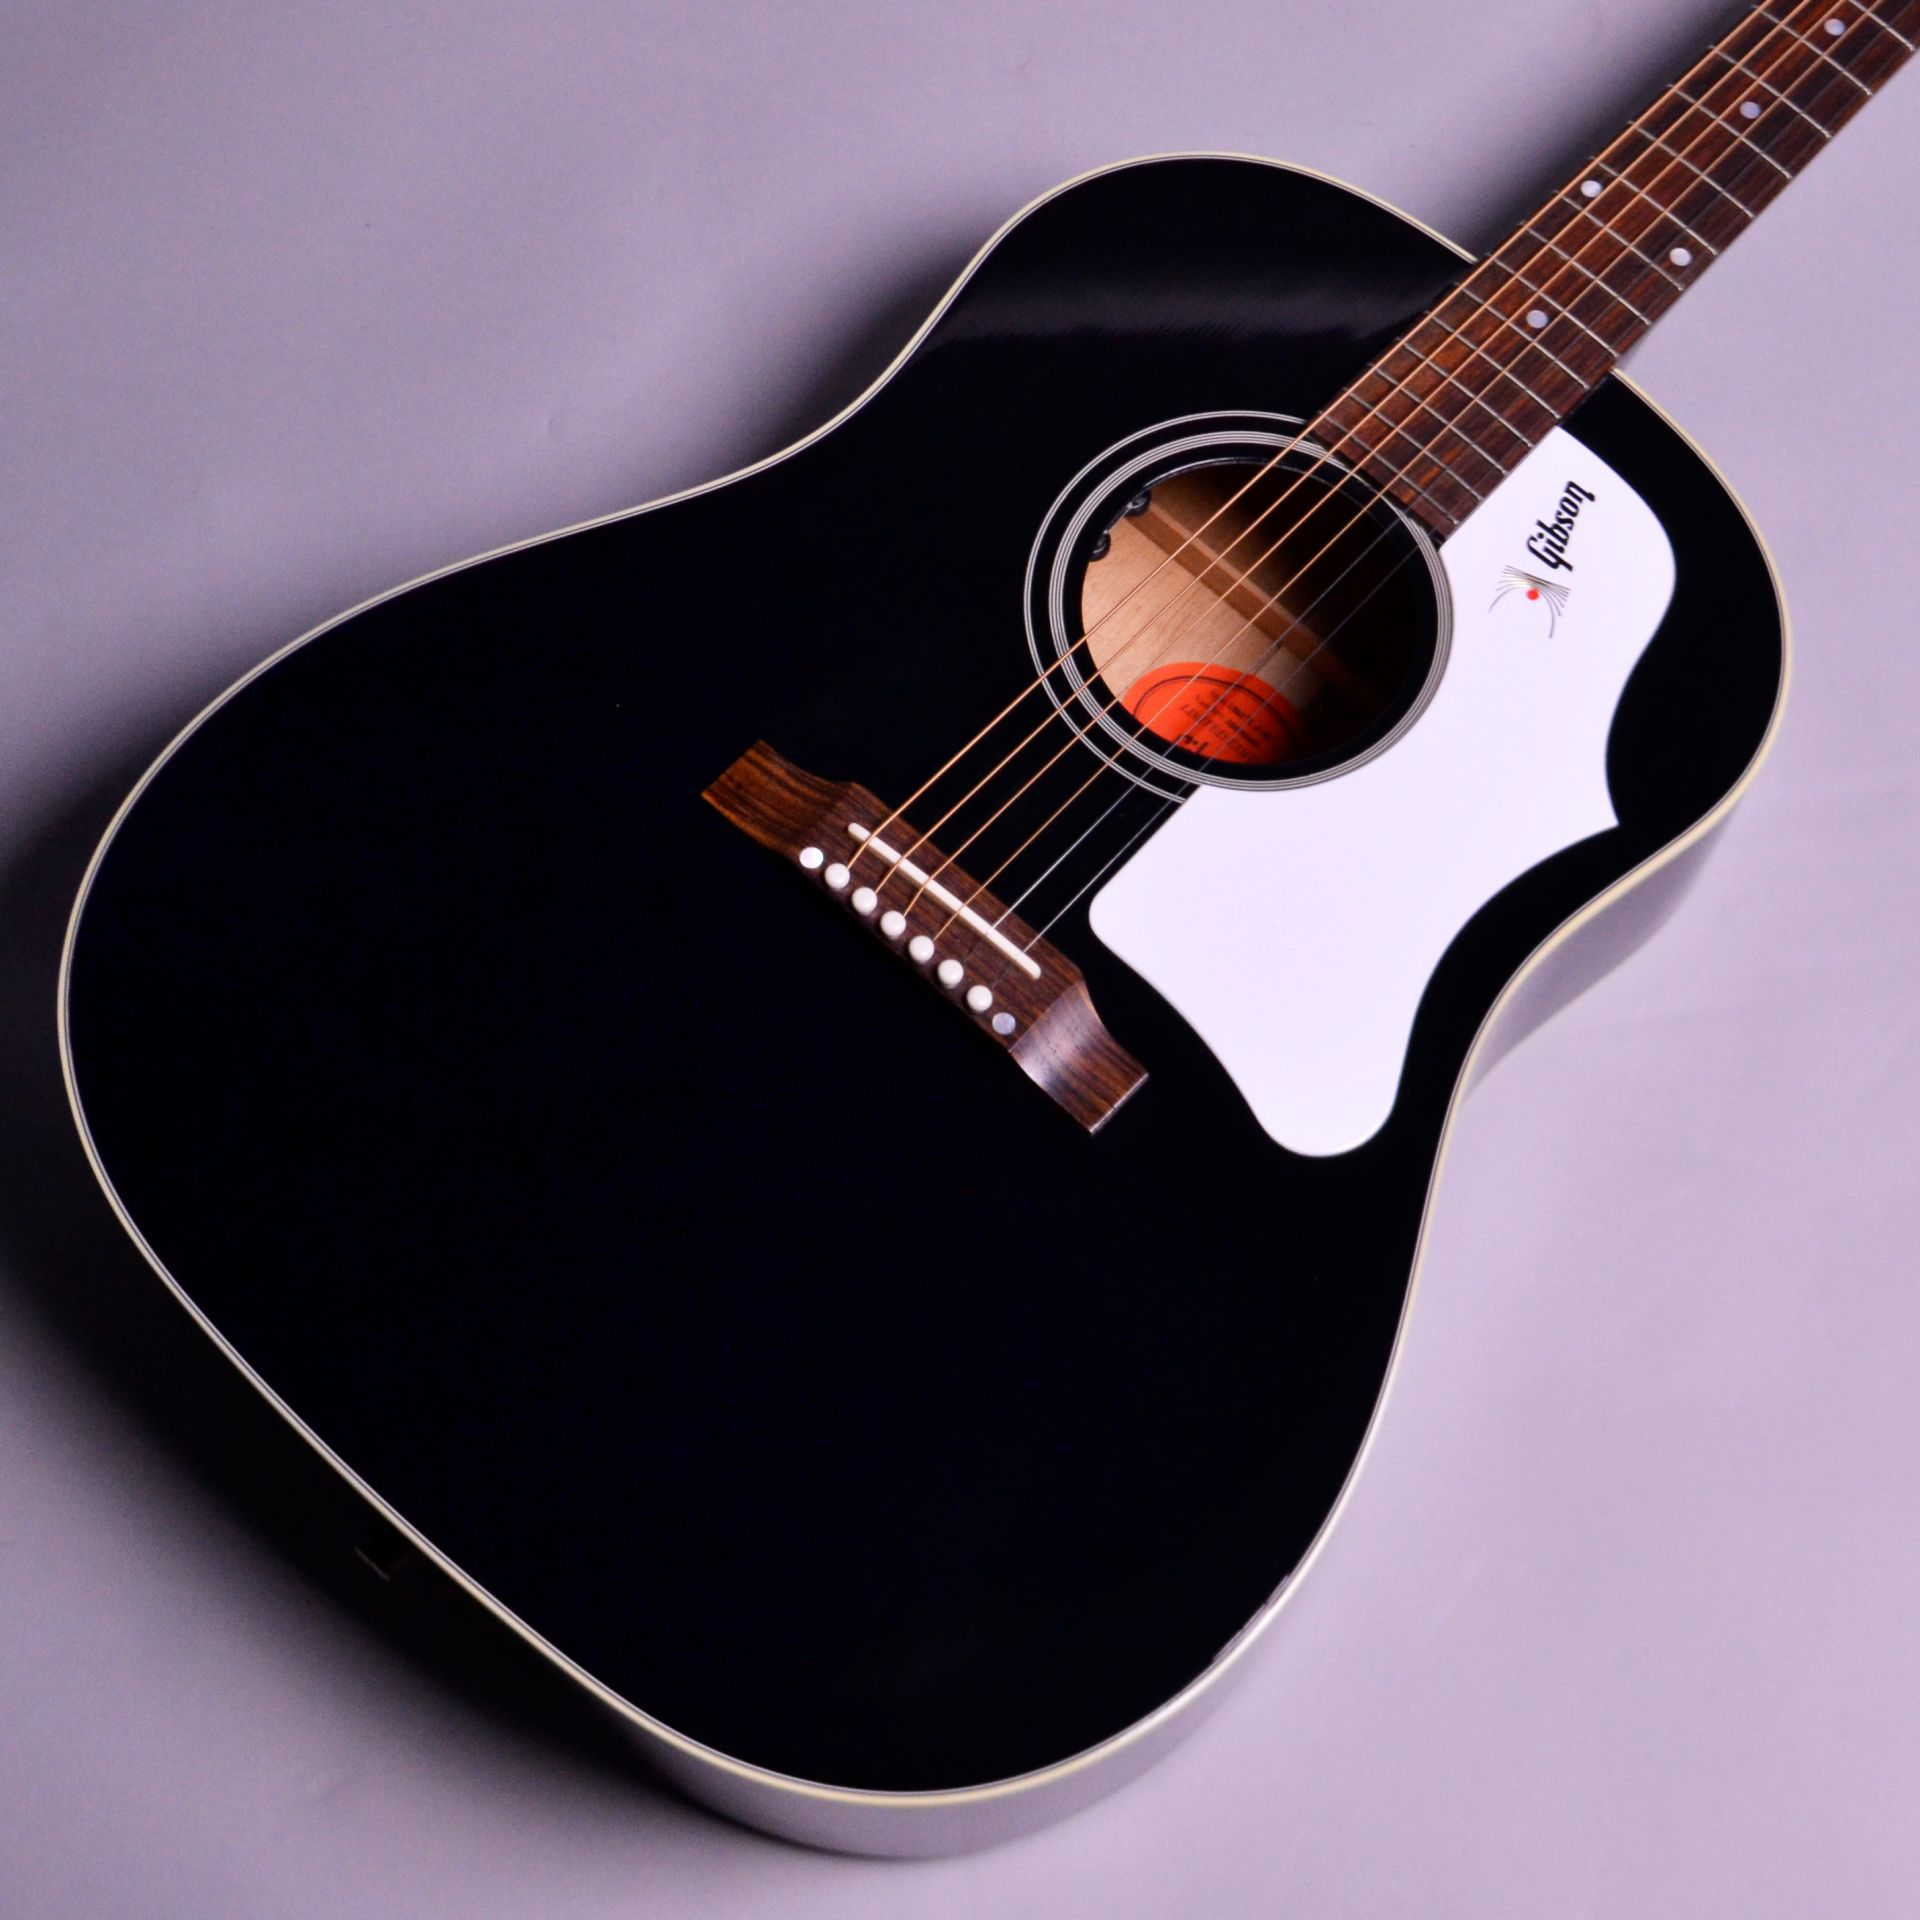 Monthly Limited 1960s J-45 Ebony 【限定品!】のボディトップ-アップ画像